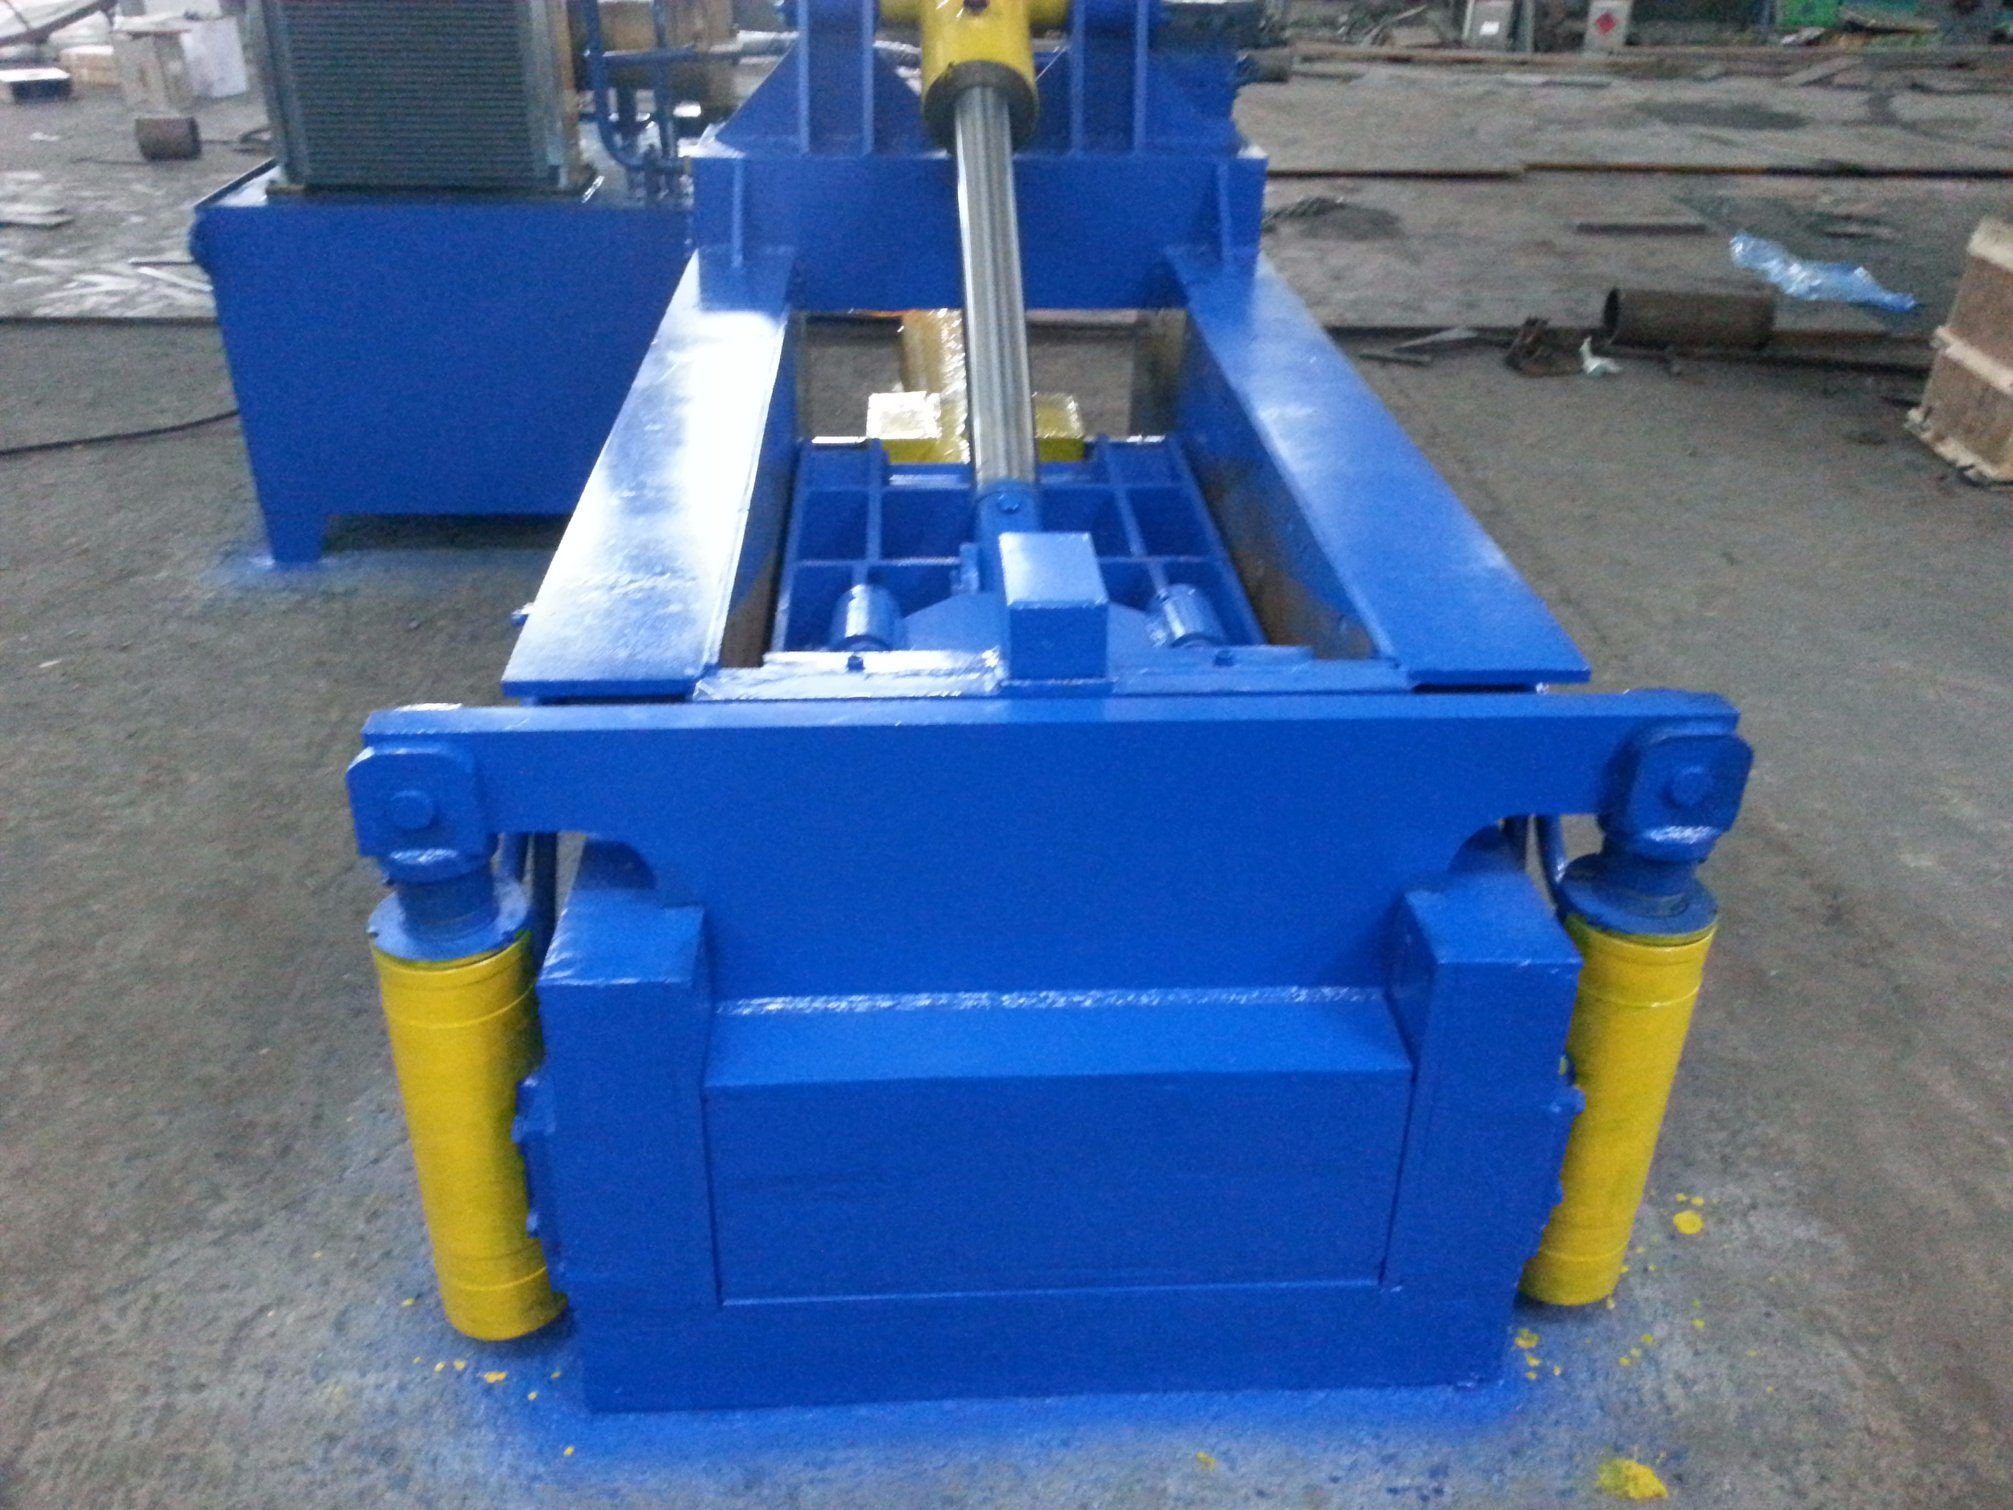 Metal Baler Baling Press Machine Hydraulic Compress Baler